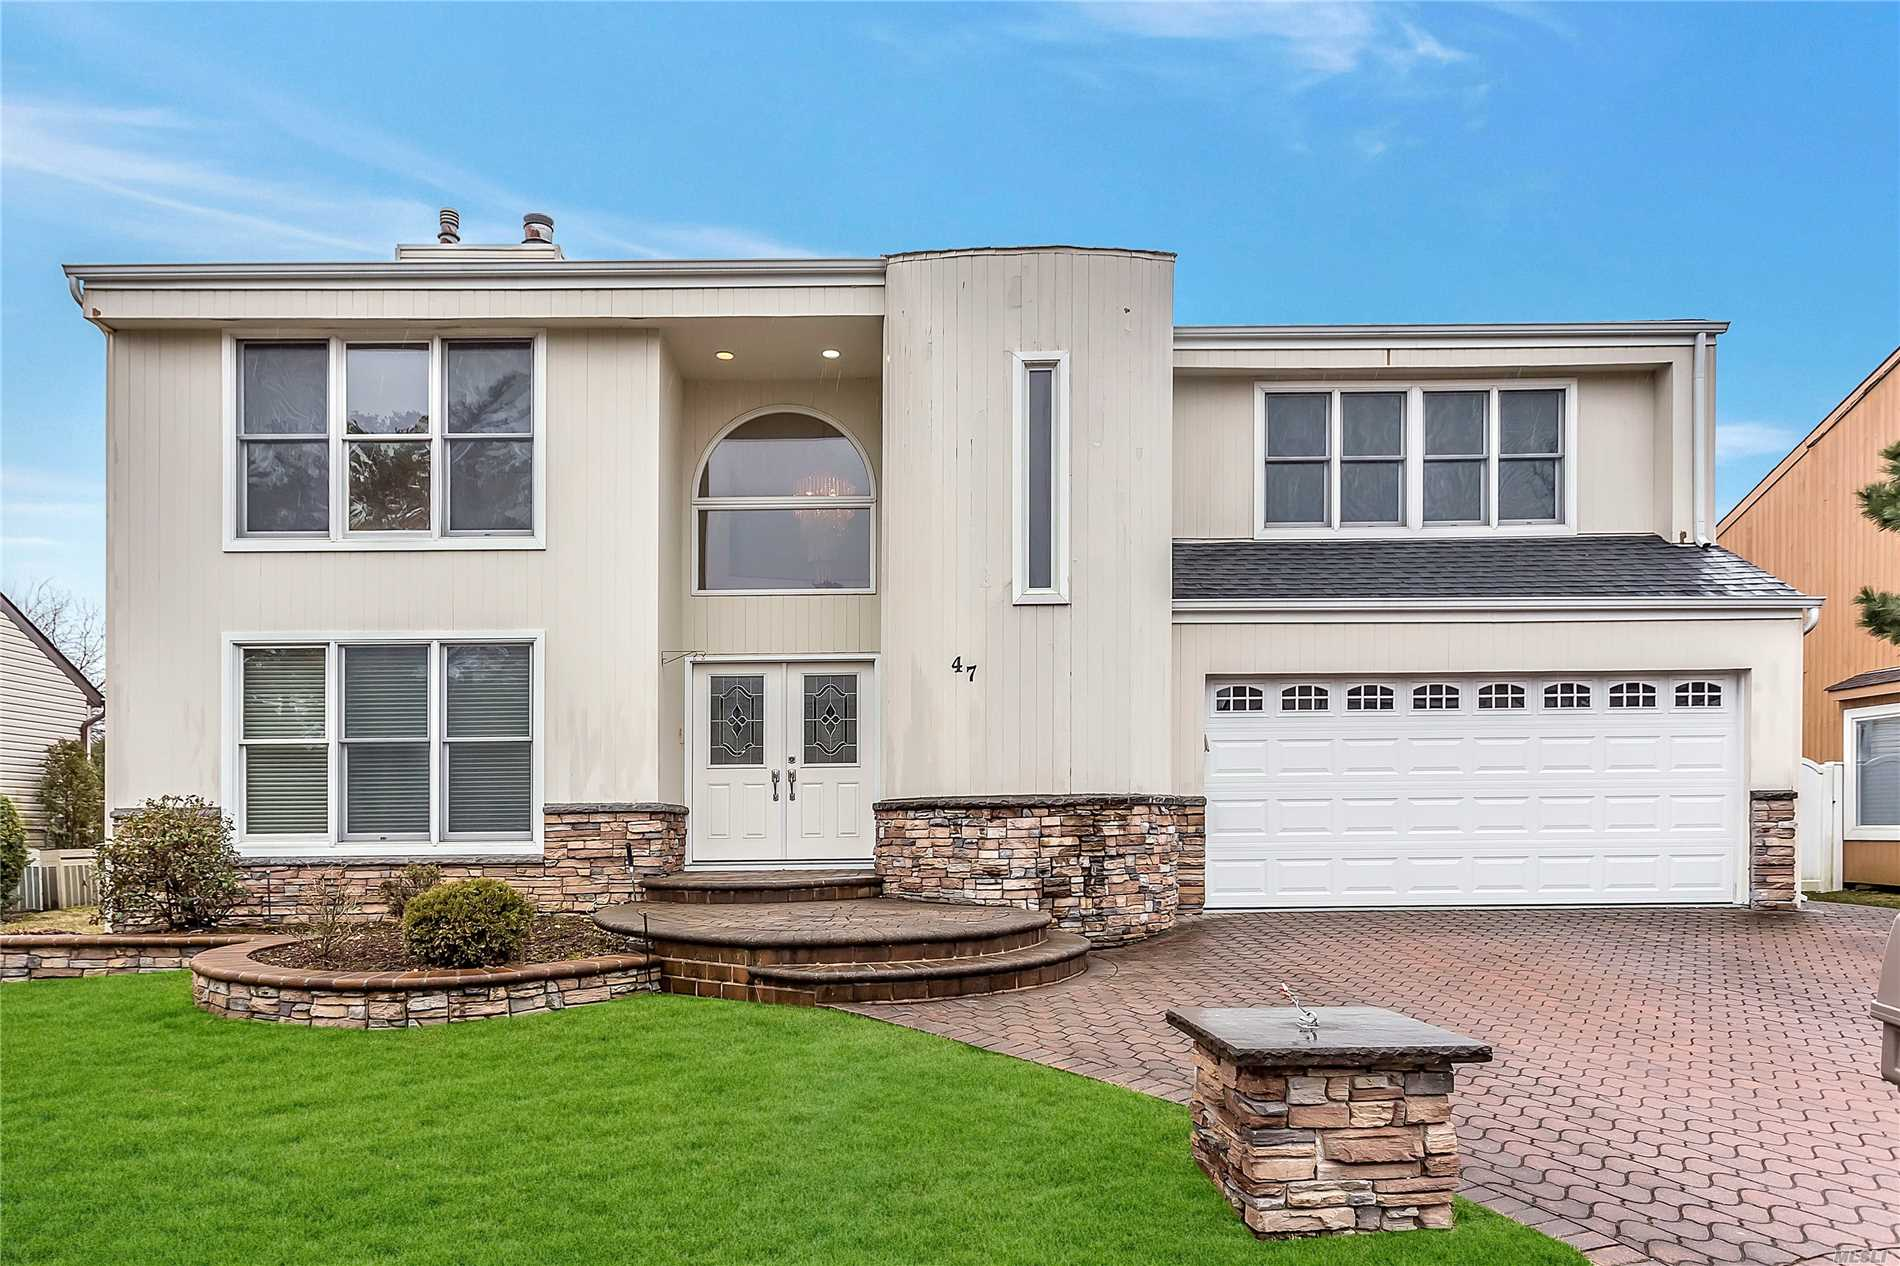 A True Entertainers Delight. Spacious Contemporary Colonial In Syosset's Campus Estates. 2 Story Formal Entry With Celestial Windows. Wood & Stone Eat In Kitchen With New SS Appliances.Pass Thur Fireplace in Den to LR. Large Rooms Many With Vaulted Ceilings. Full Large Finished Basement. New Roof, Siding & HWH. Community Tennis & Pool. Robbins ES, Thompson MS.